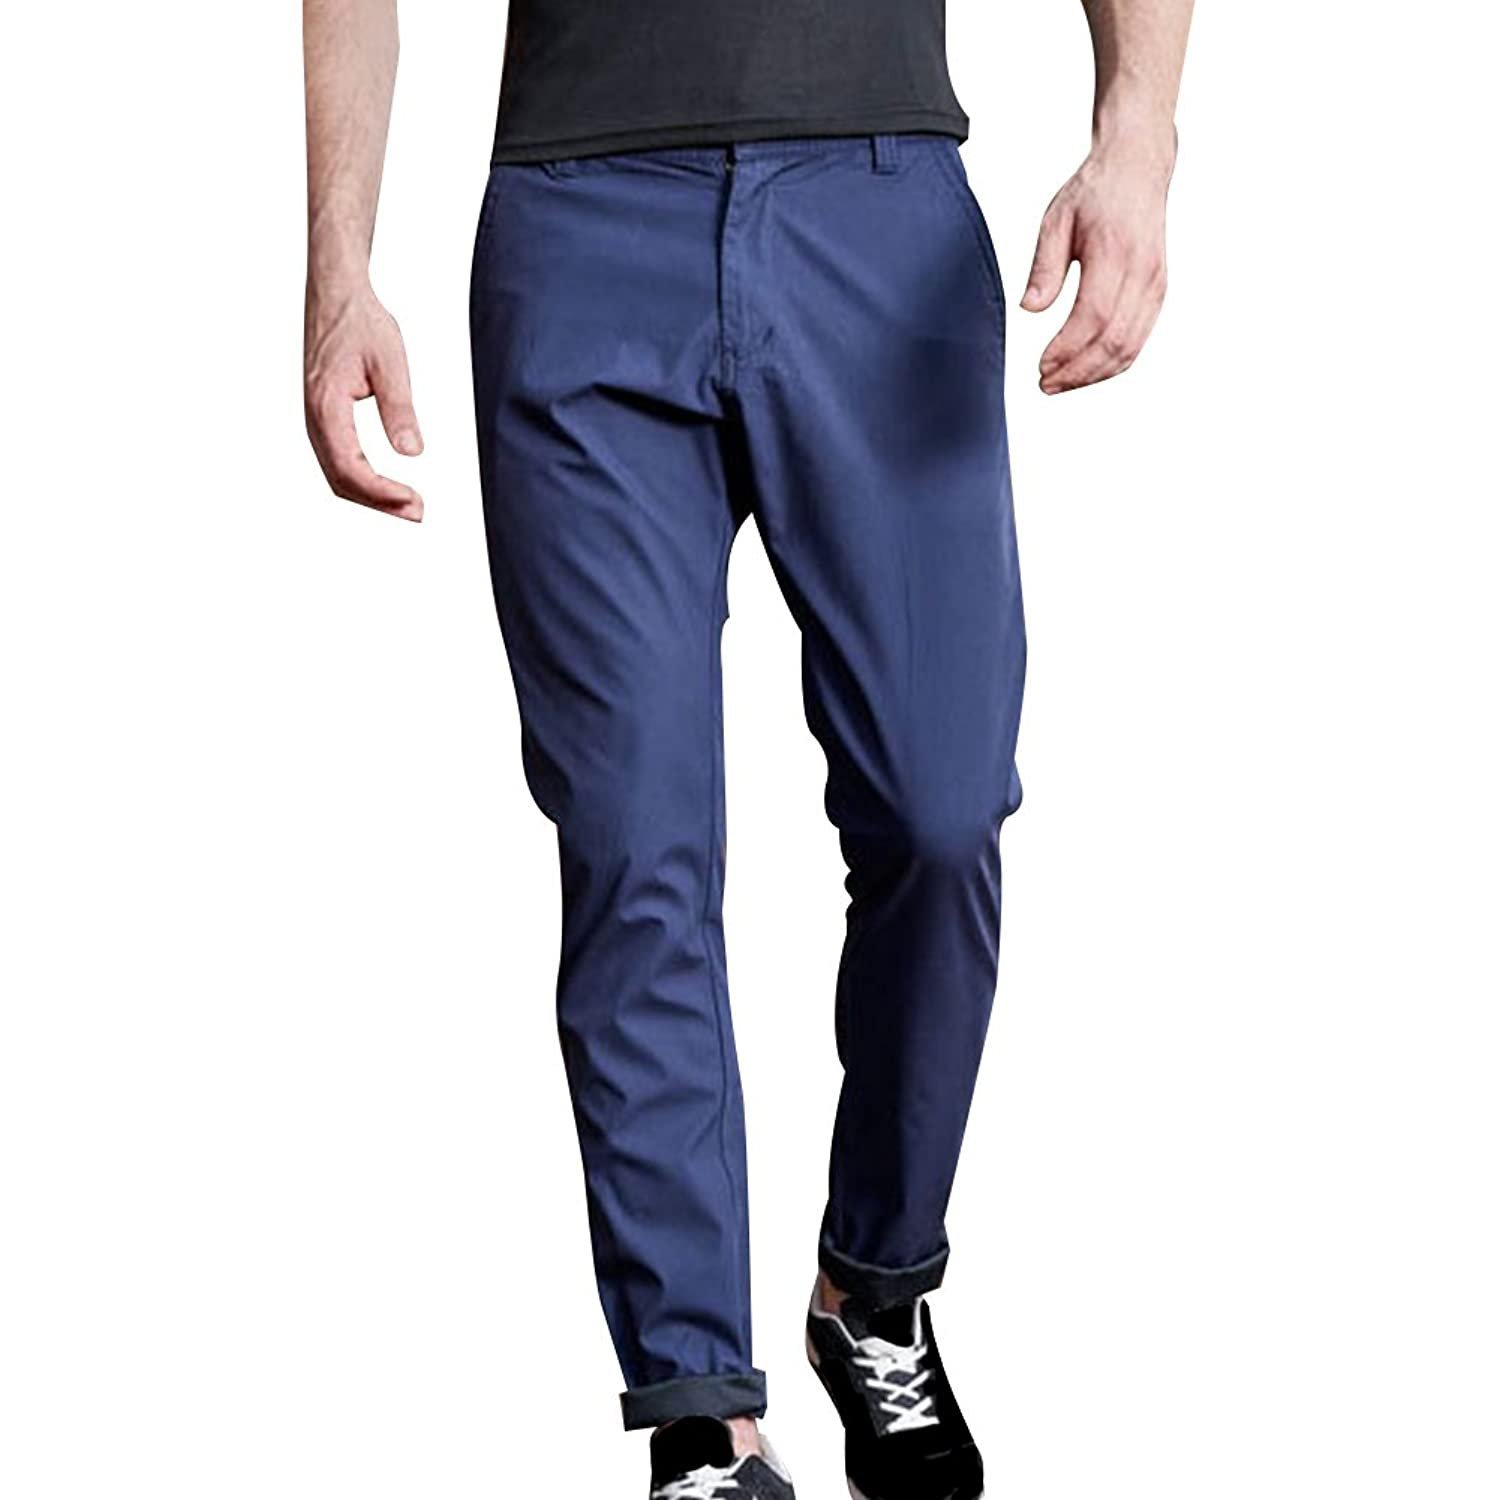 8823fa28fe Miskely Men's Straight Slim Fit Cotton Casual Athletic Pants Fashion  Business Work Stretch Chino Trousers Plus